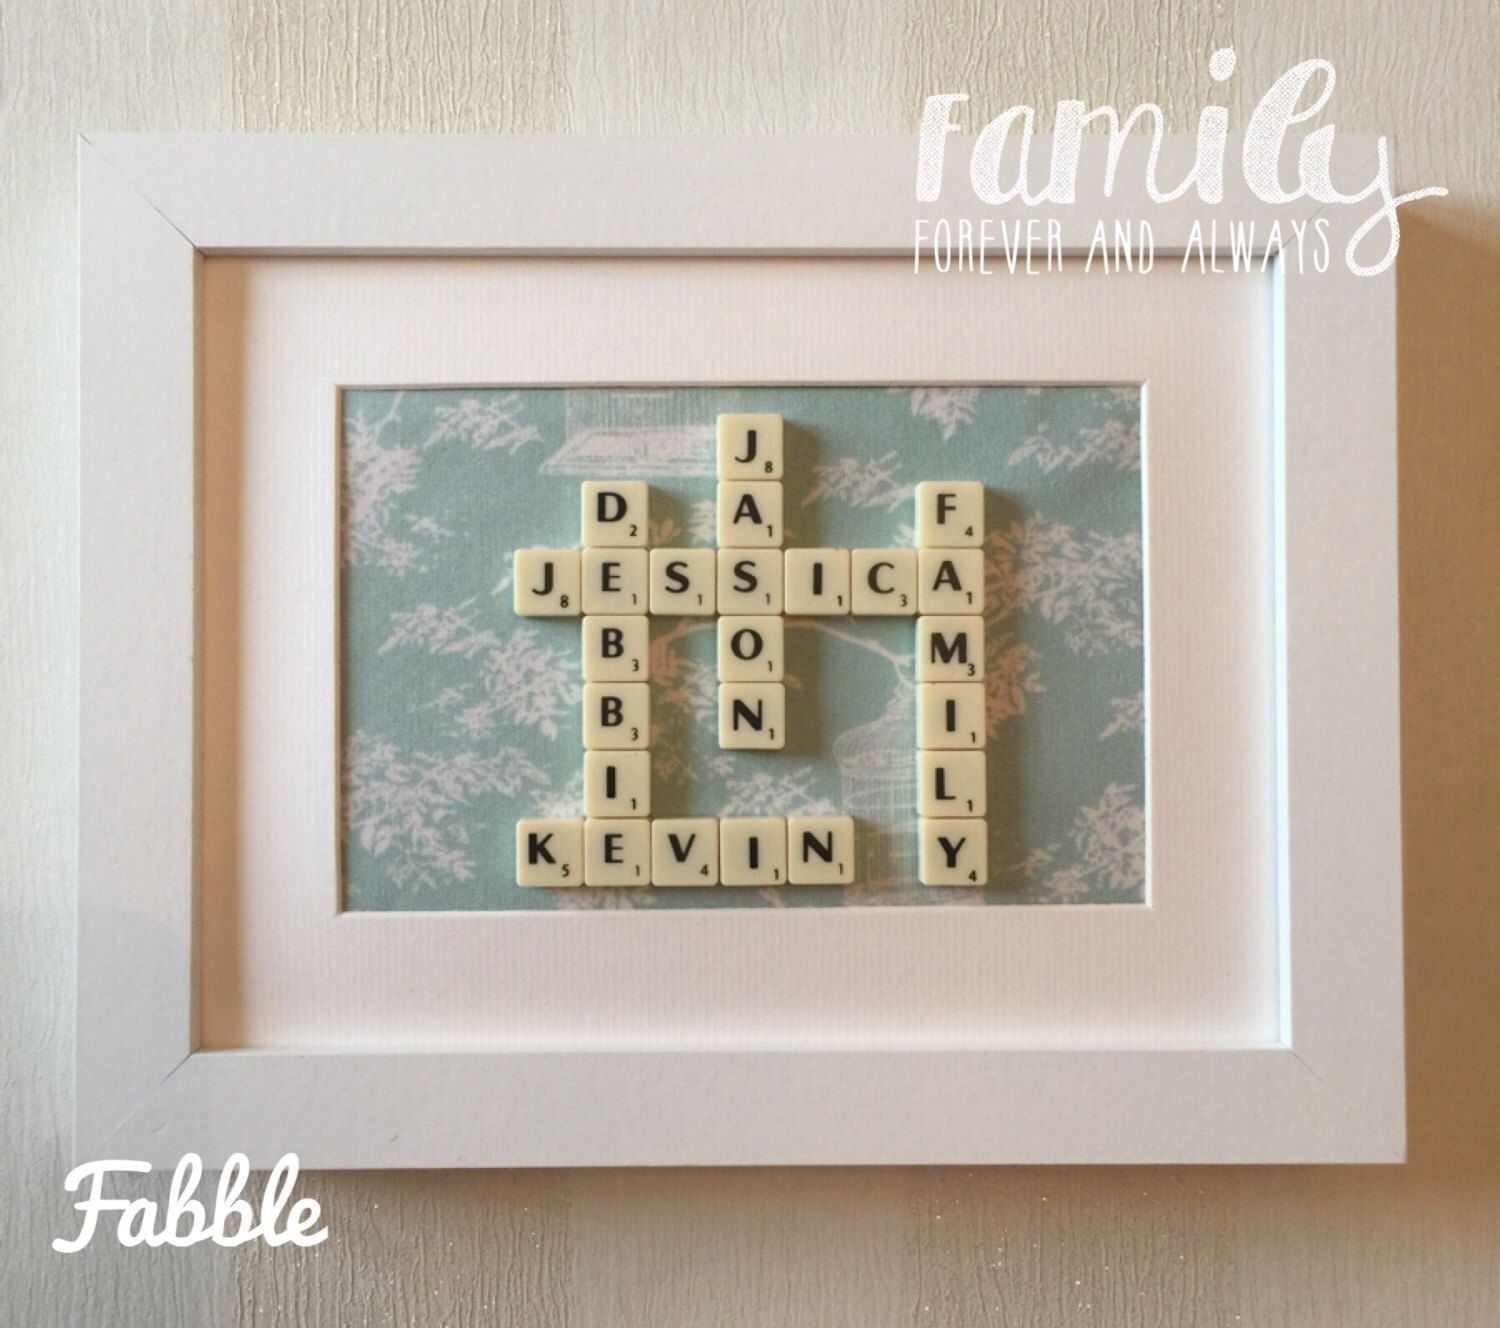 Scrabble Tile Wall Decor – Scrabble Tile Wall Decor Gift For Latest Personalized Fabric Wall Art (View 7 of 15)